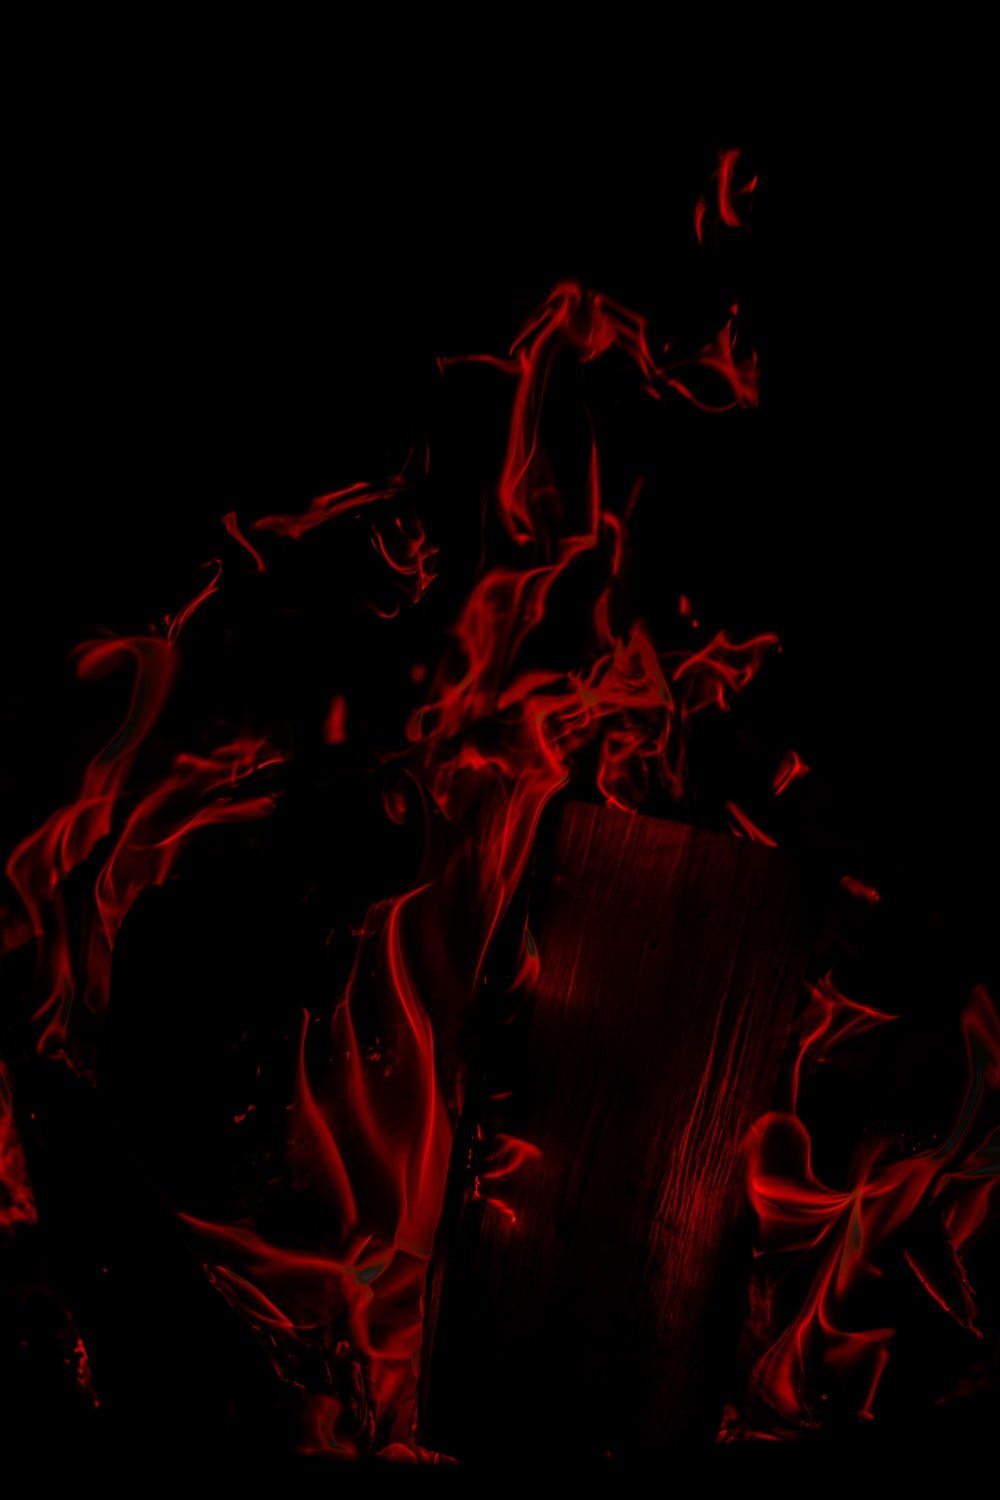 red and black fire digital wallpaper photo Pattern Image on 1000x1500